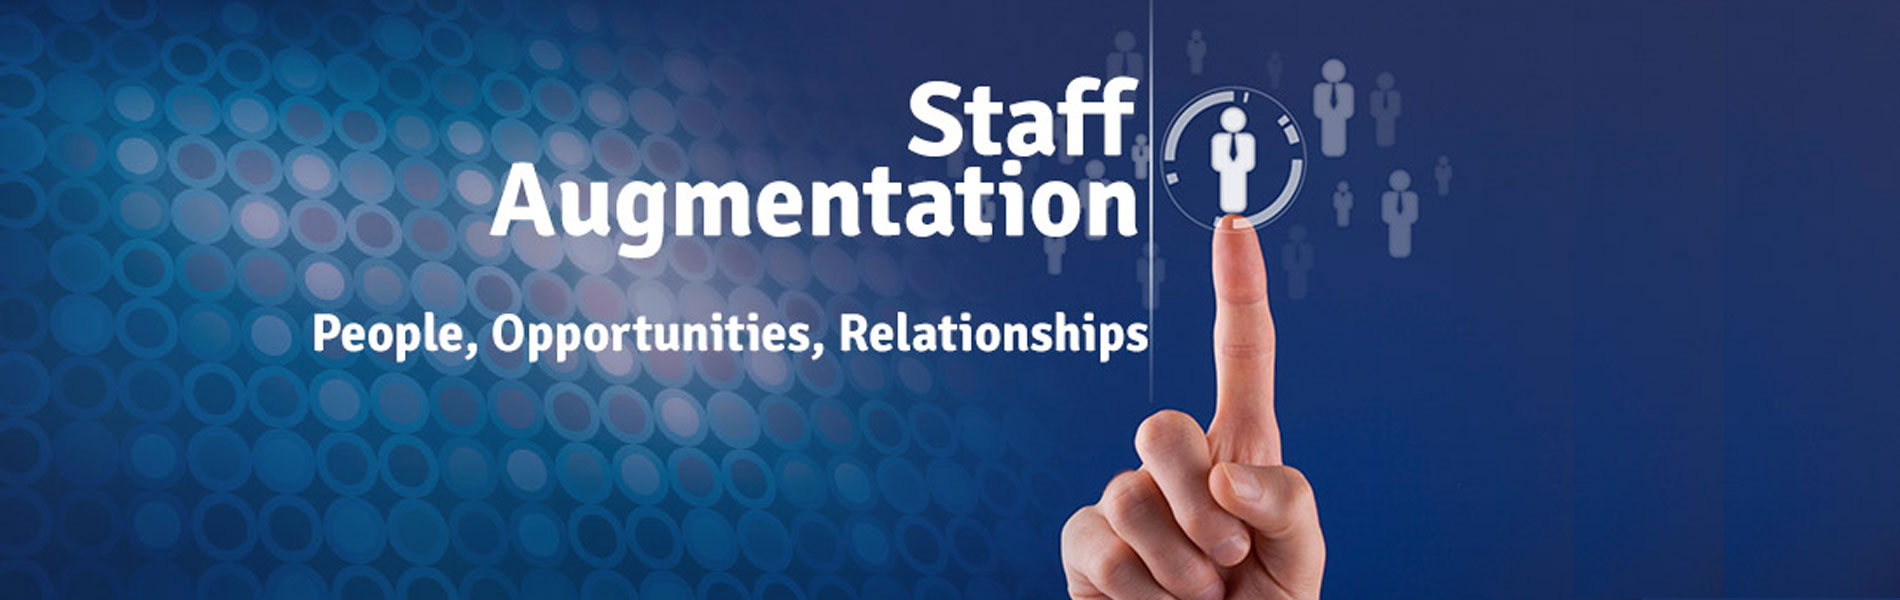 Staff Augmentation